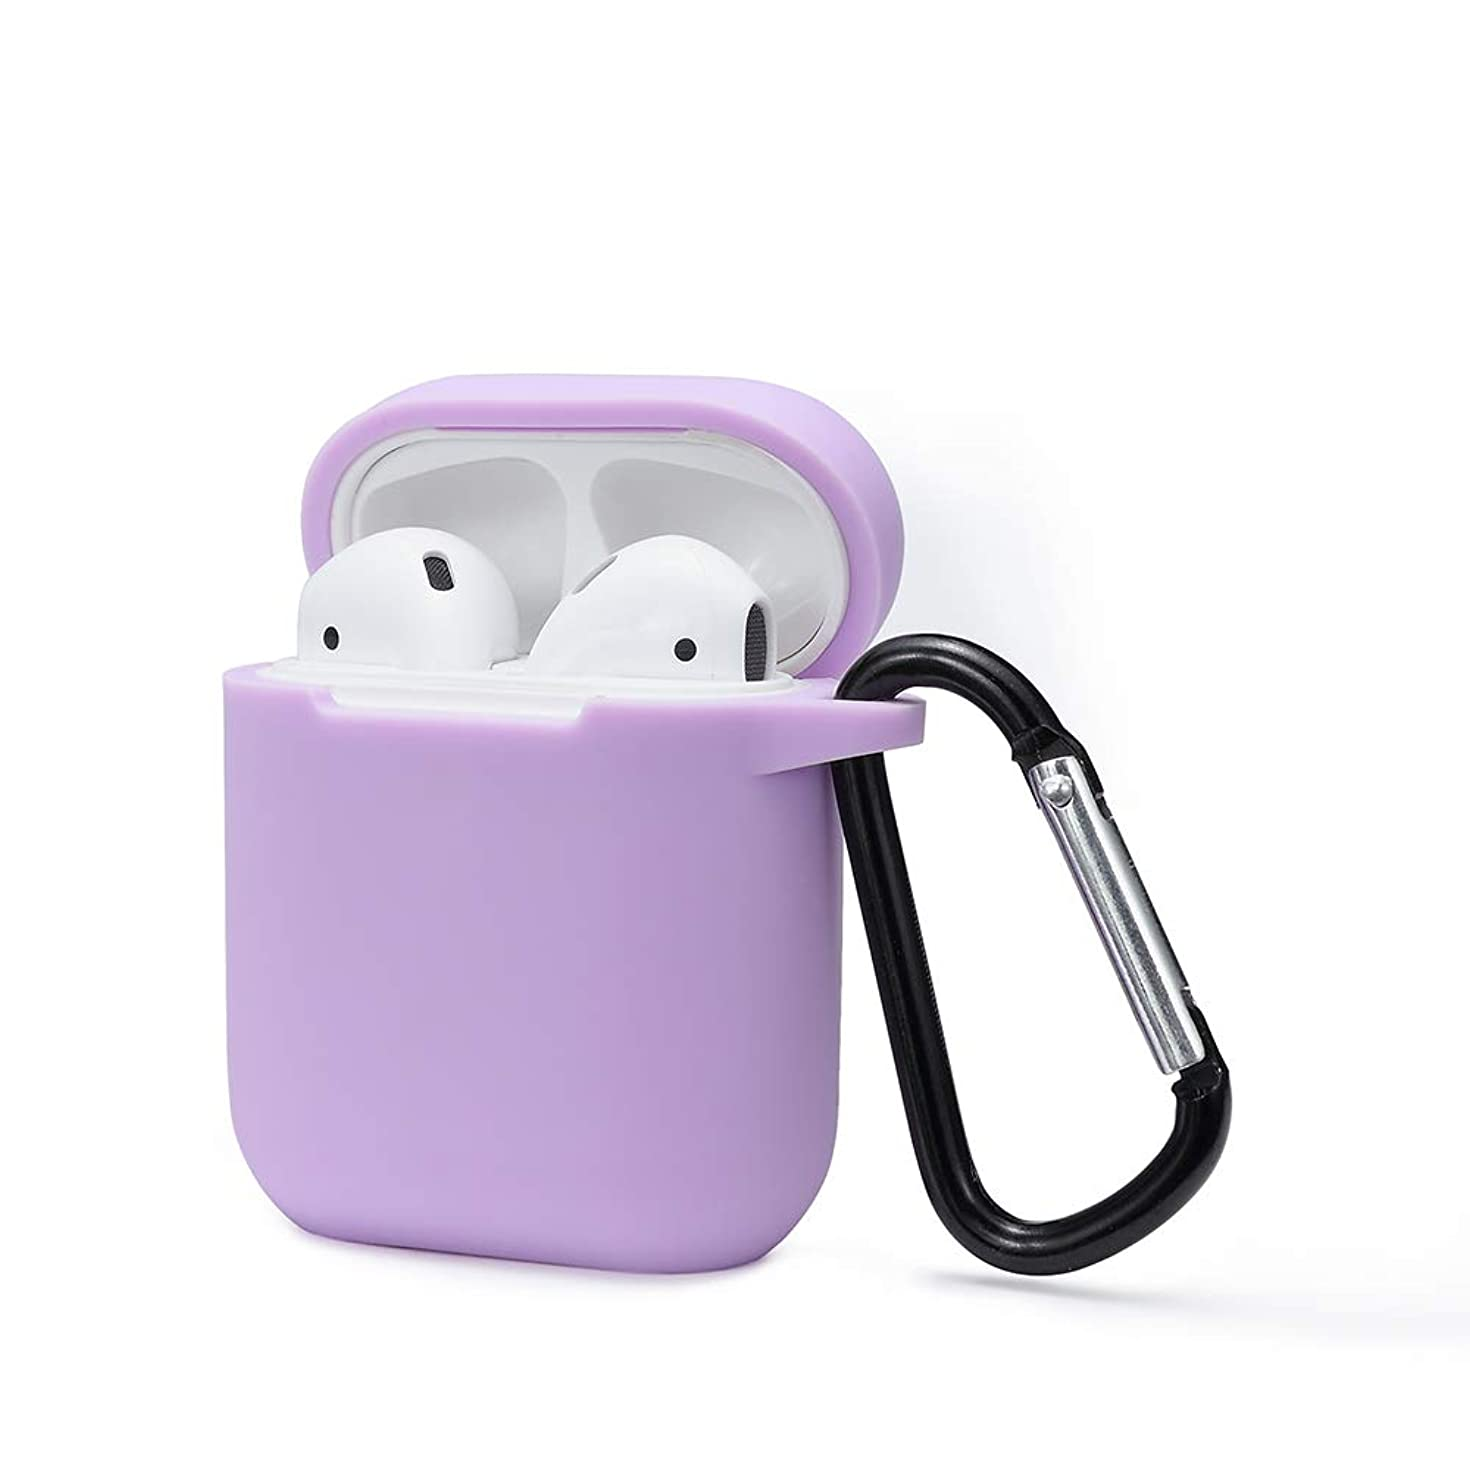 KOKAKA Compatible for AirPods Case with Keychain, 360°Protective Premium Silicone AirPods Cover Compatiable with AirPods 2 & 1 Charging Case[Front LED Visible]-Light Purple